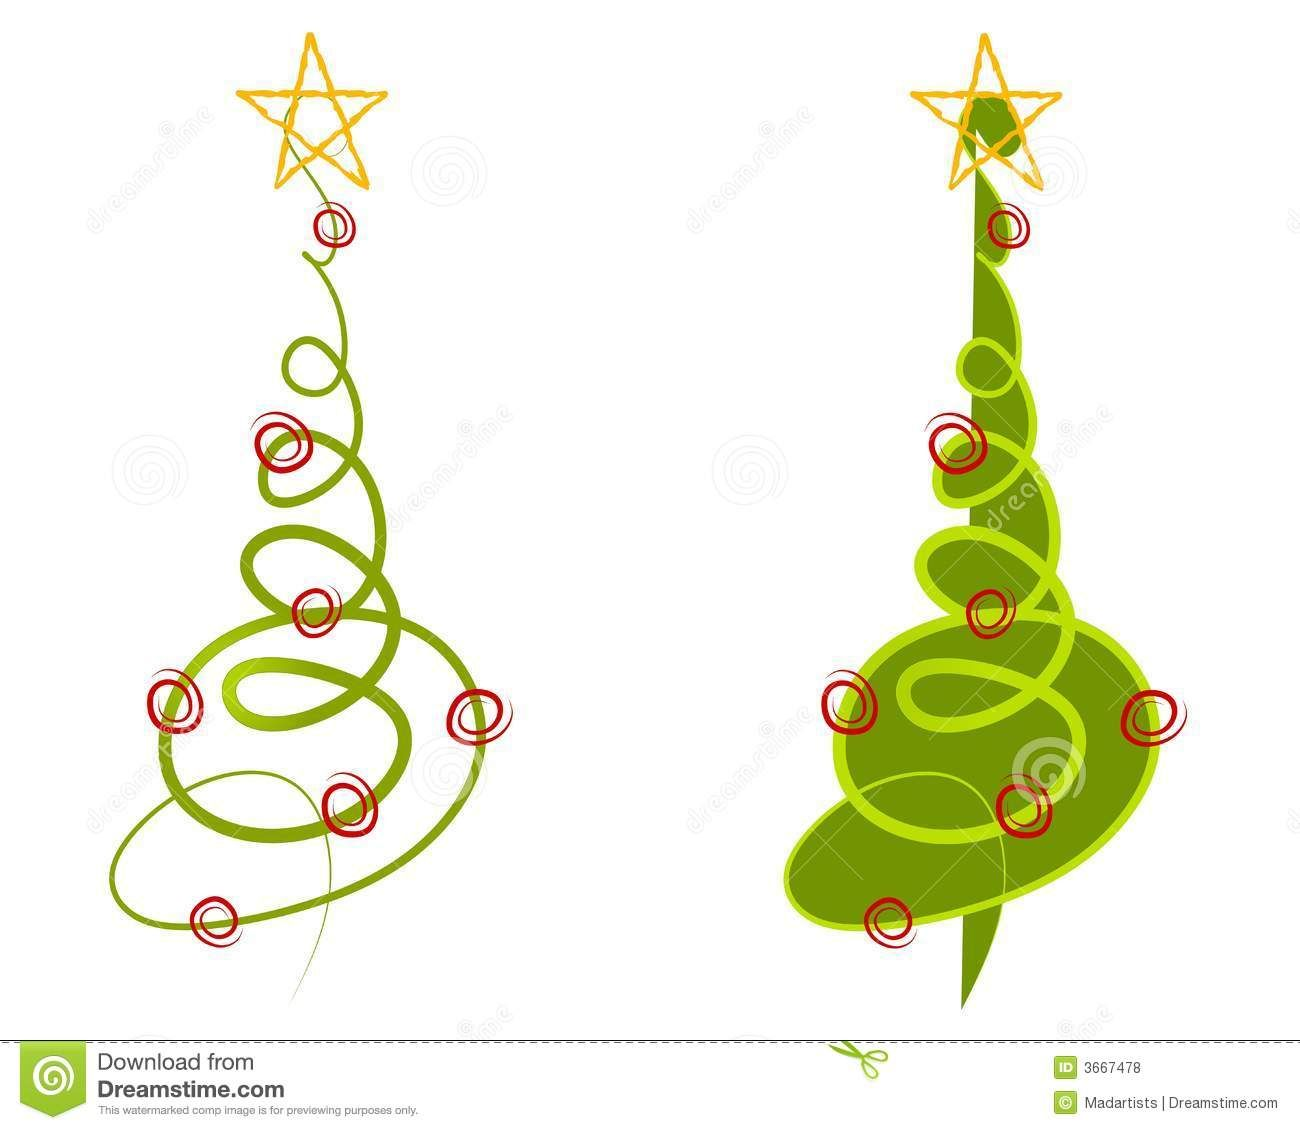 Abstract Christmas Tree Clip Art Royalty Free Stock Photos.